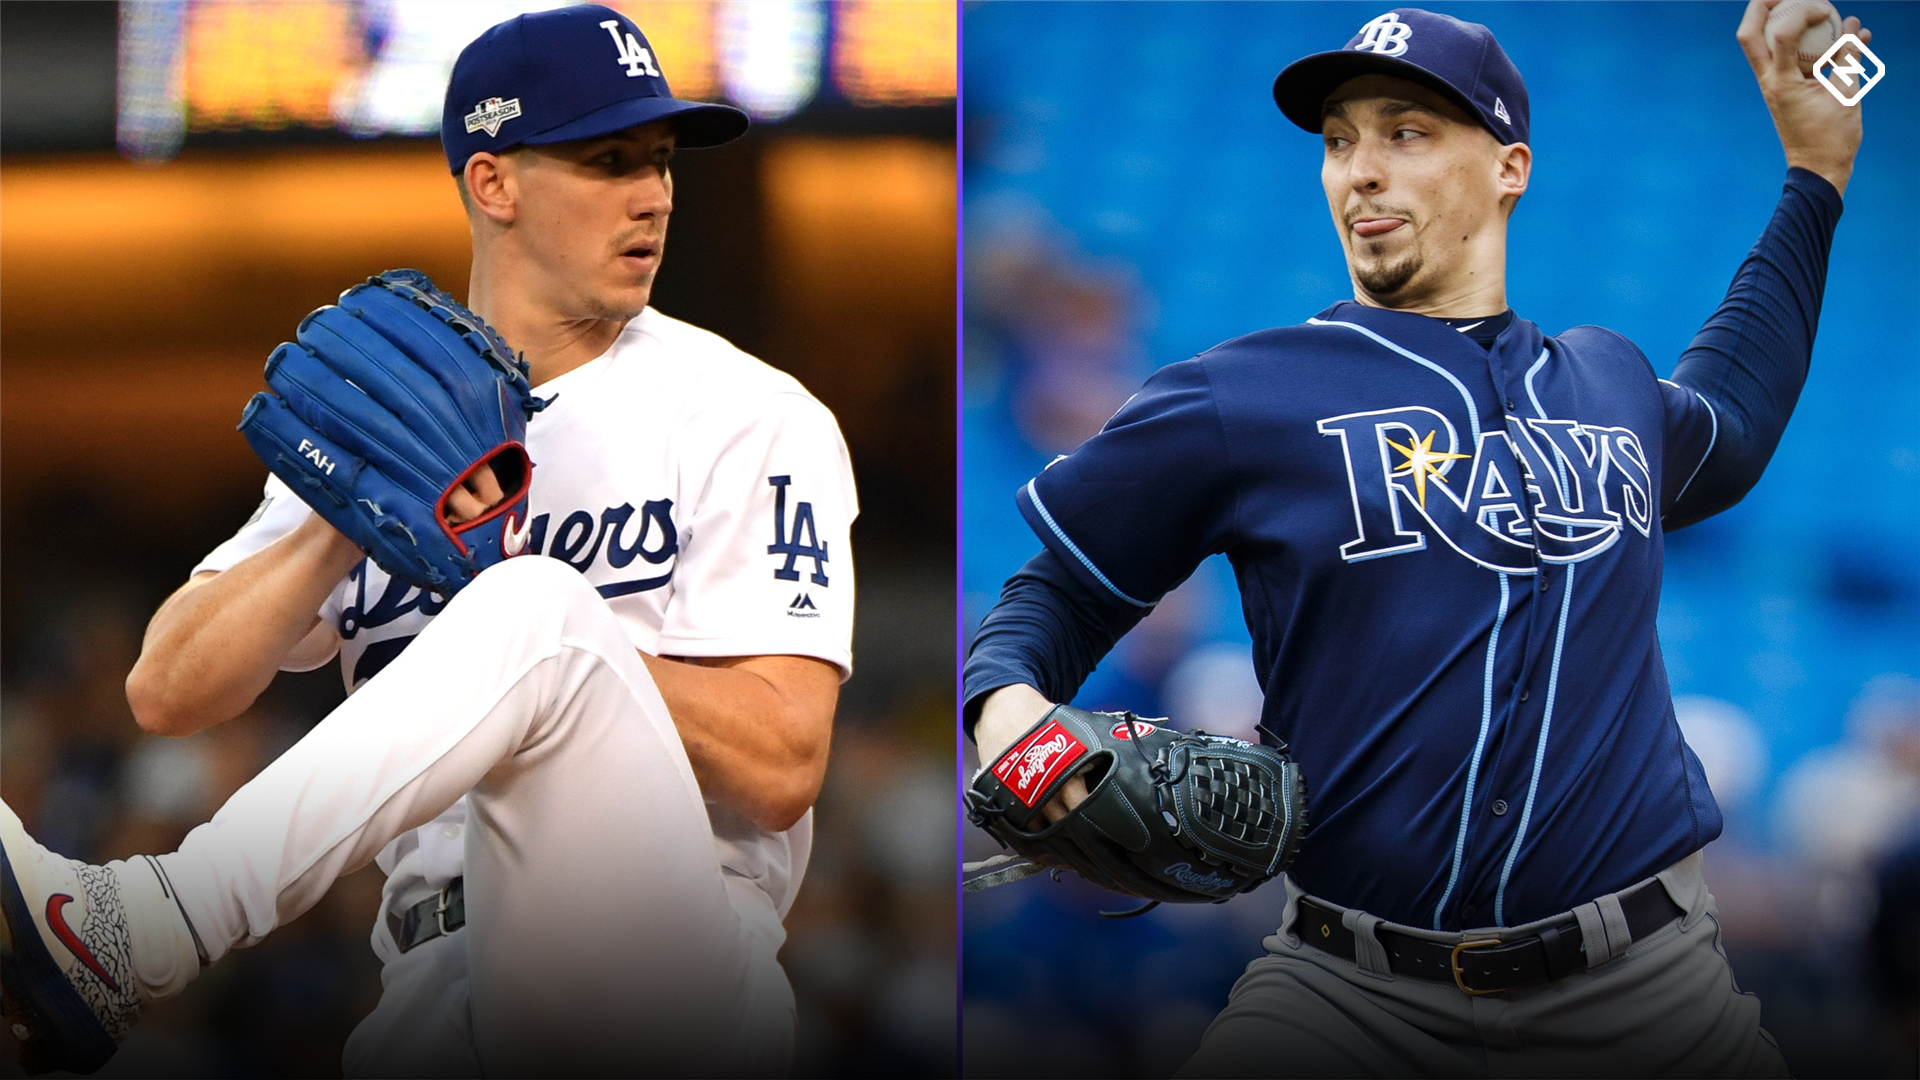 Fantasy Baseball Sp Rankings Top Players Sleepers At Starting Pitcher For 2020 Sporting News